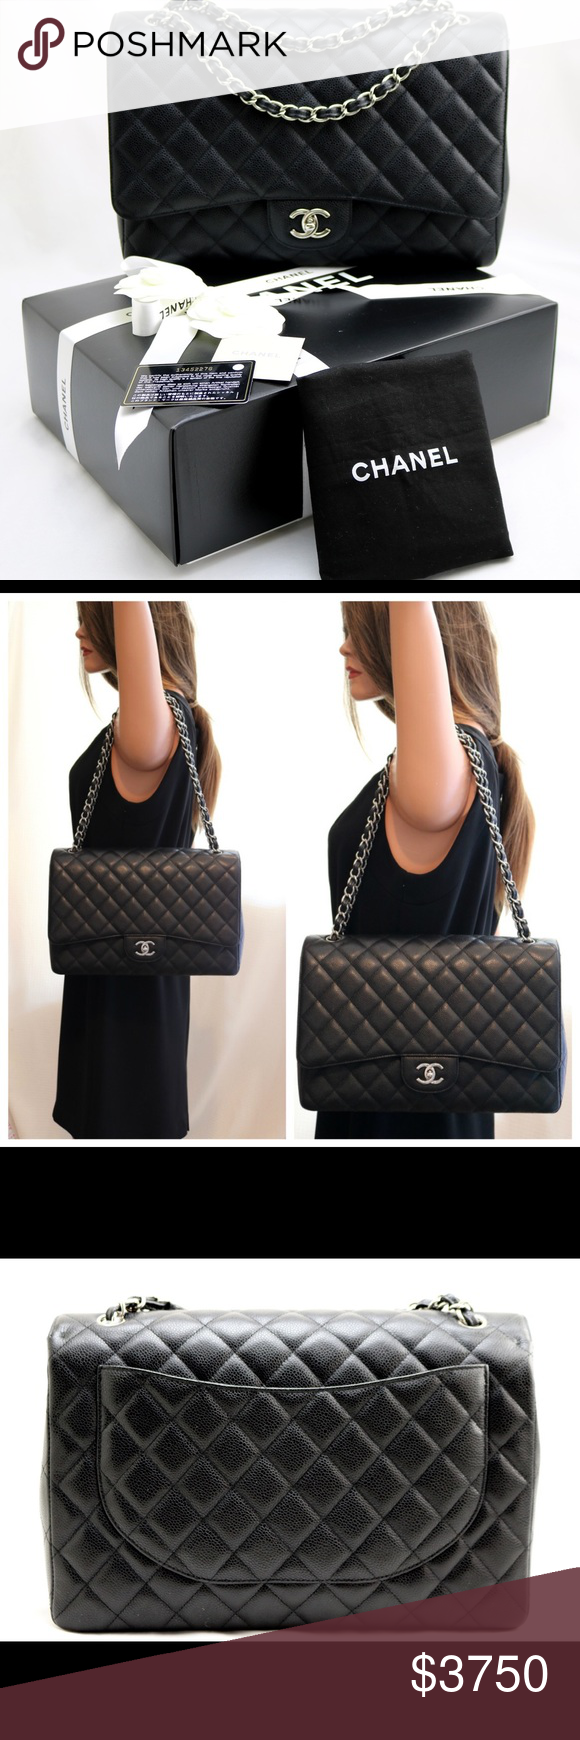 a0d50b32e4f1b2 Chanel XL Jumbo Maxi Caviar Classic Flap Bag Brand New 100% Authentic Chanel  XL Jumbo Maxi Black Caviar Leather Classic Single Flap Bag CHANEL Bags  Shoulder ...